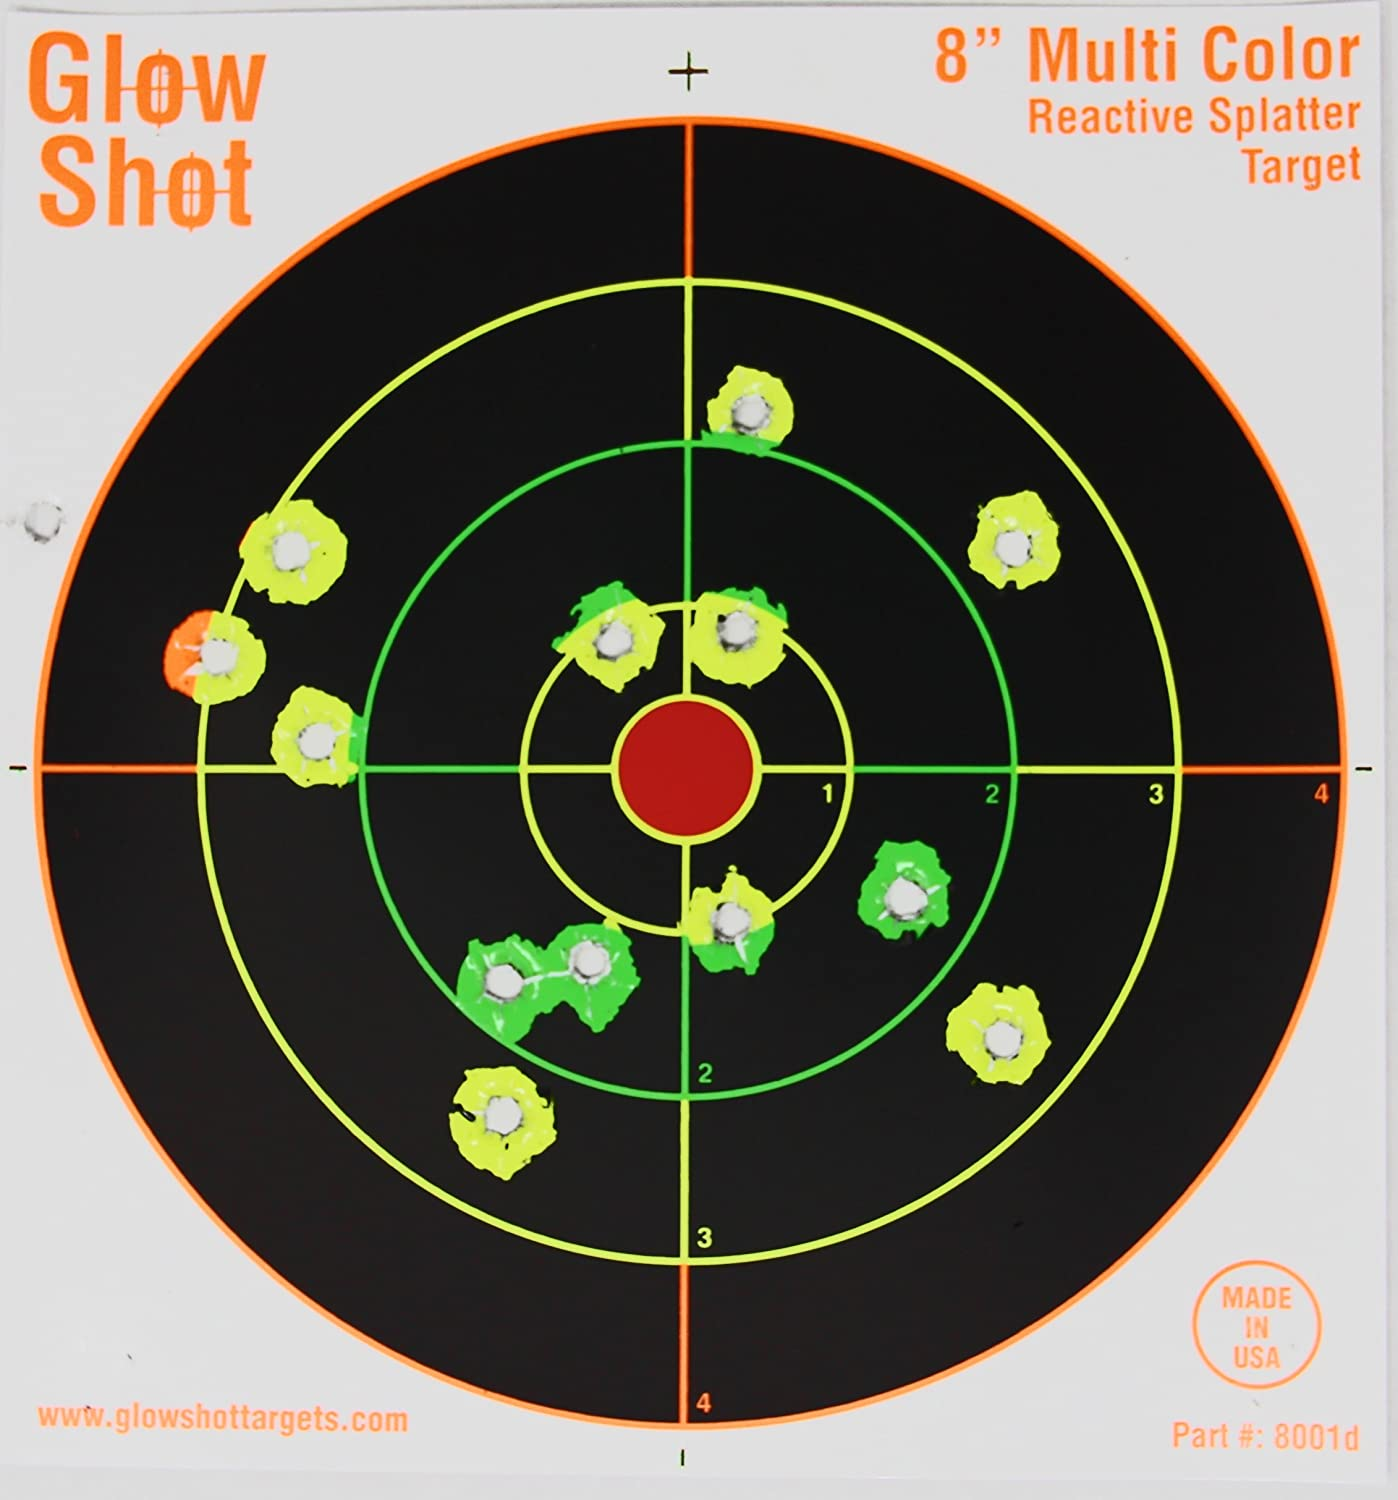 75 pack - 8 Reactive Splatter Targets - GlowShot - Multi color - See Your Hits Instantly - Gun and Rifle Targets - Search GlowShot for all our 6 8 and 10 Targets